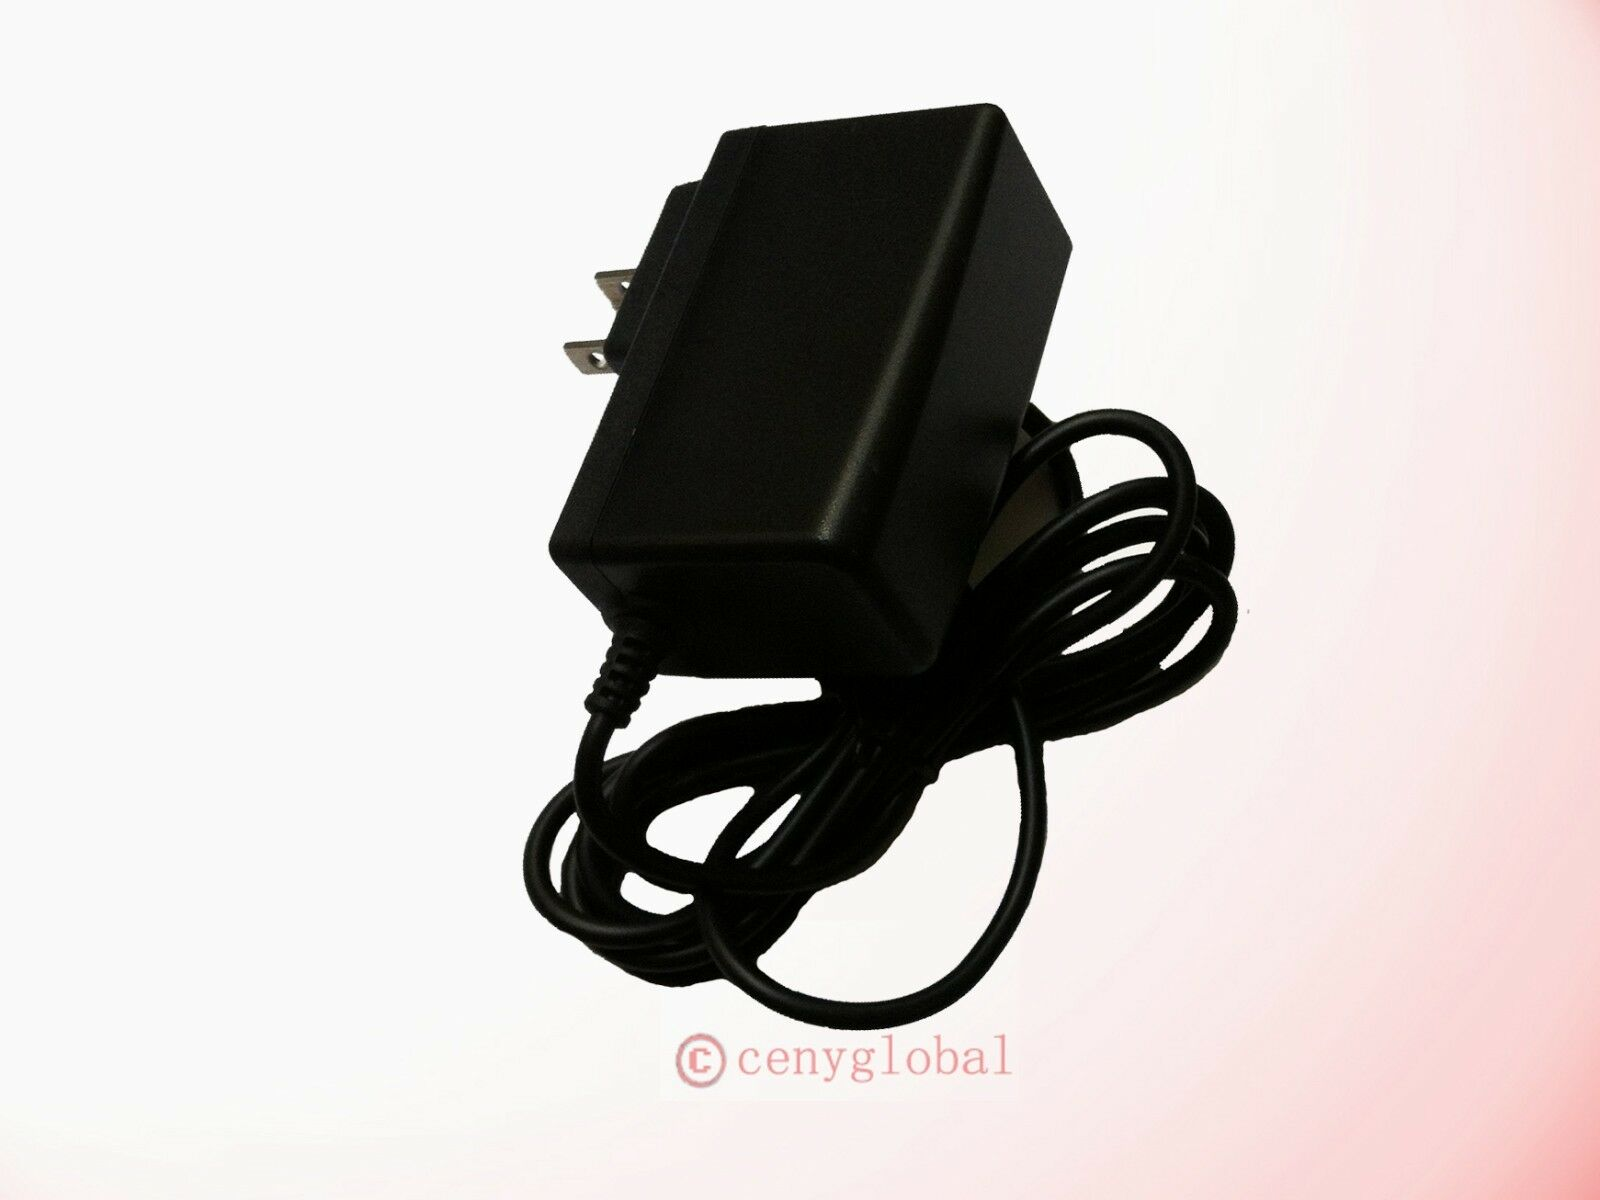 AC//DC Adapter For Sony DPF-VR100 Digital Photo Frame Power Supply Charger Cord